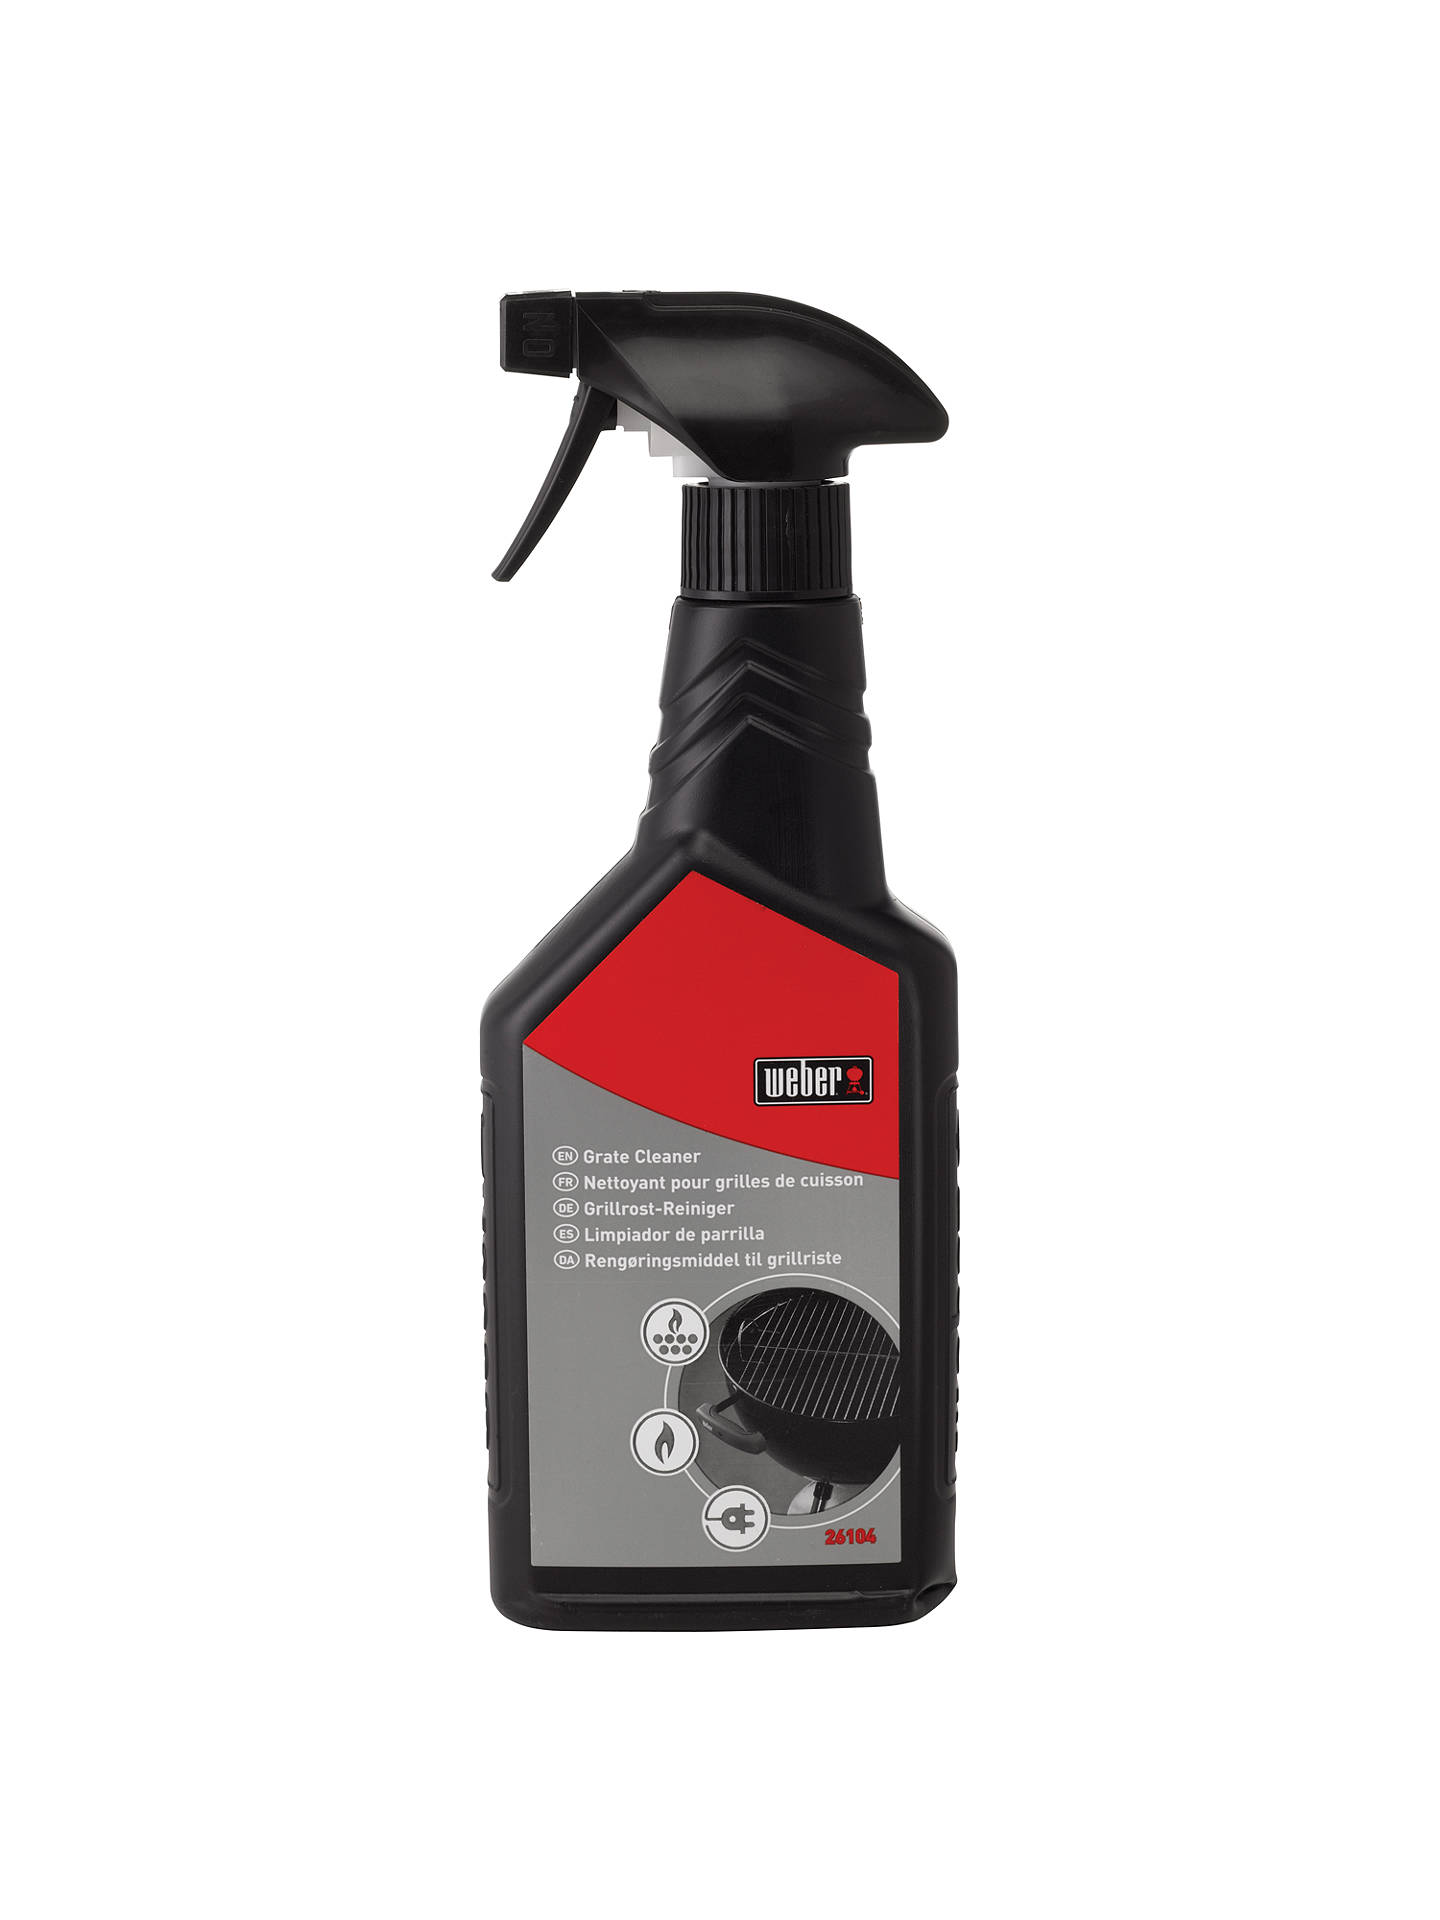 Weber Bbq Grate Cleaner, 300ml by Weber